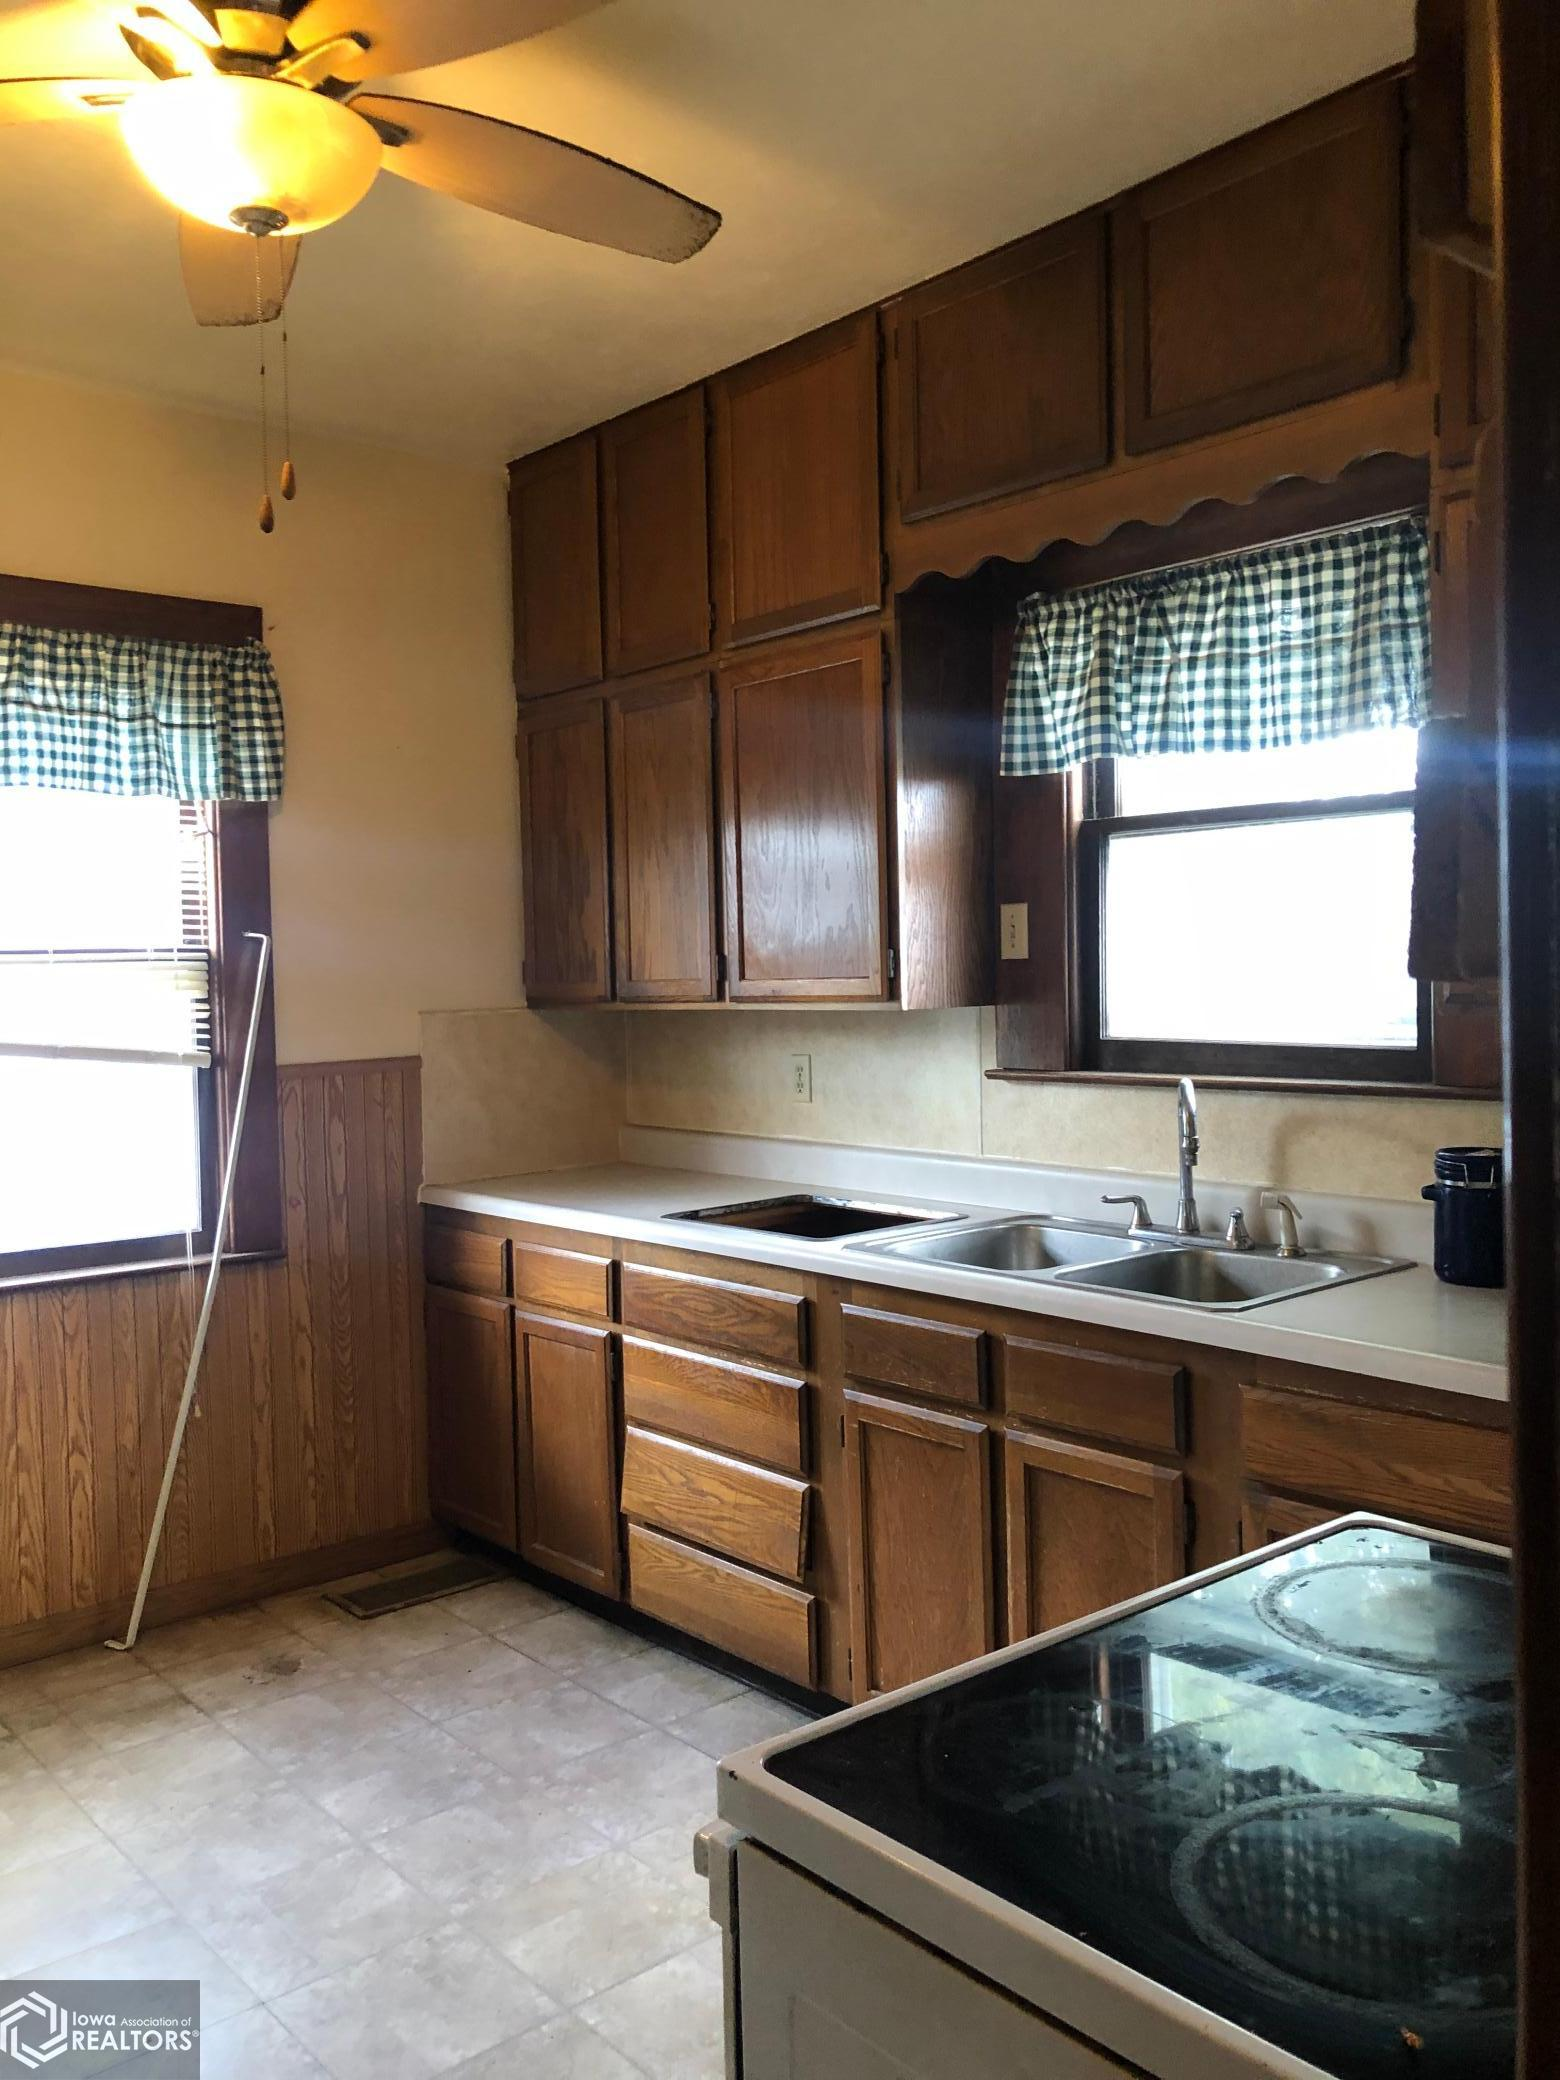 15147 Newcomer, Grinnell, Iowa 50112-7711, 3 Bedrooms Bedrooms, ,1 BathroomBathrooms,Single Family,For Sale,Newcomer,5675221